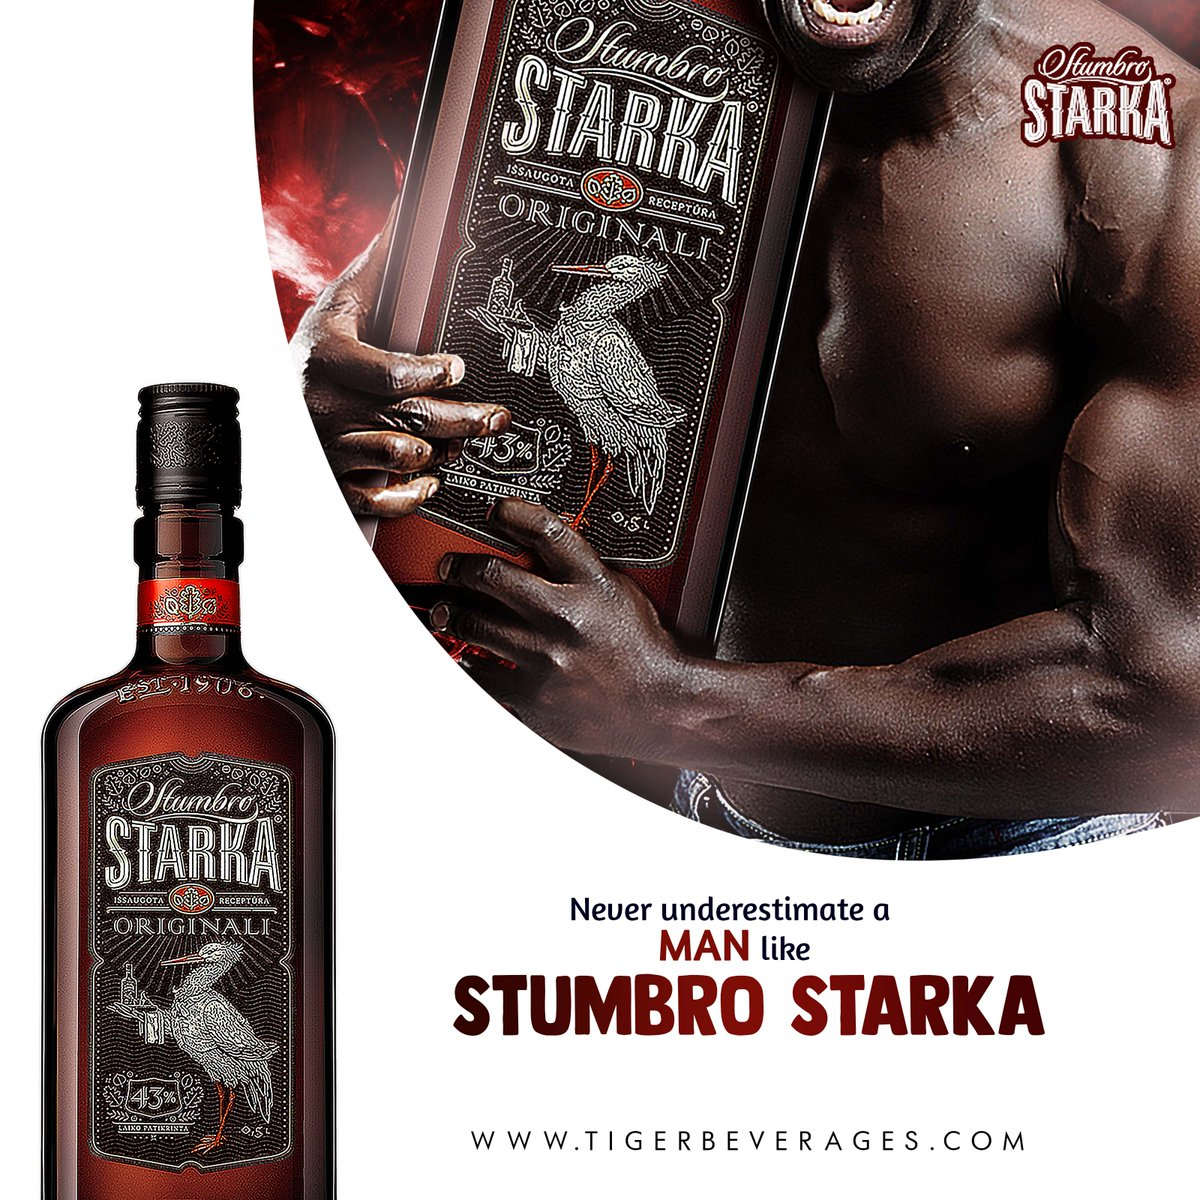 We know the strength of a man lies within. However a man as strong as Stumbro Starka Bitters is a companion to renew your strength  43% Stronger. We are not regular #TuesdayThoughts #TigerBeverages #Vodka #Beverages pic.twitter.com/KB98vyjTa5